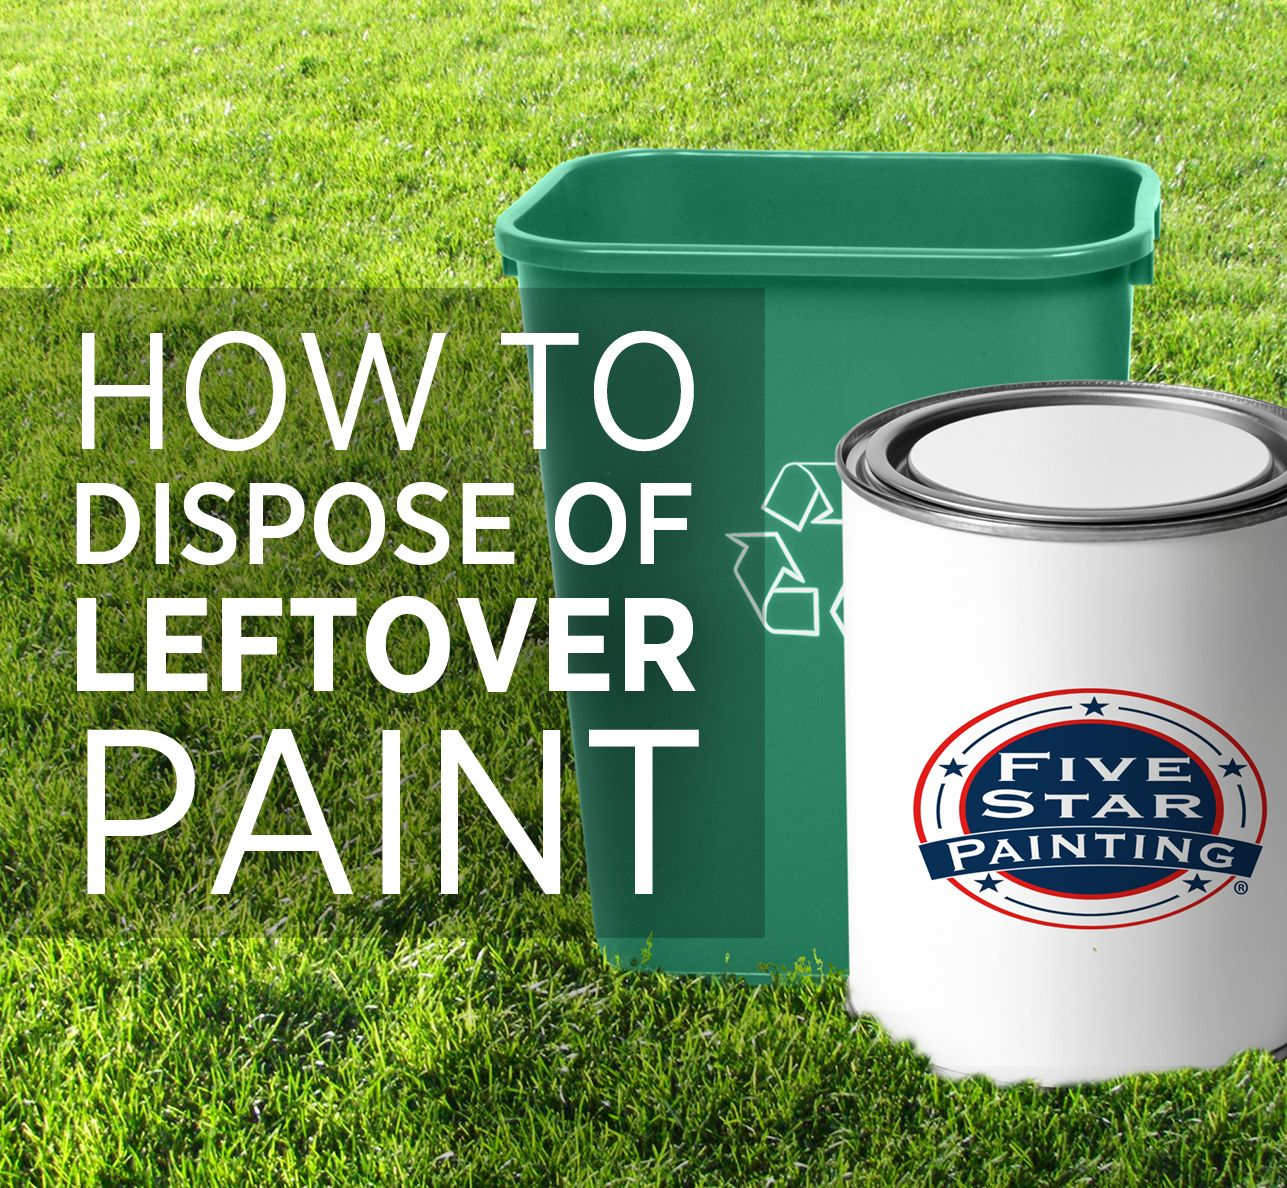 How To Dispose Of Leftover Paint Leftover Paint